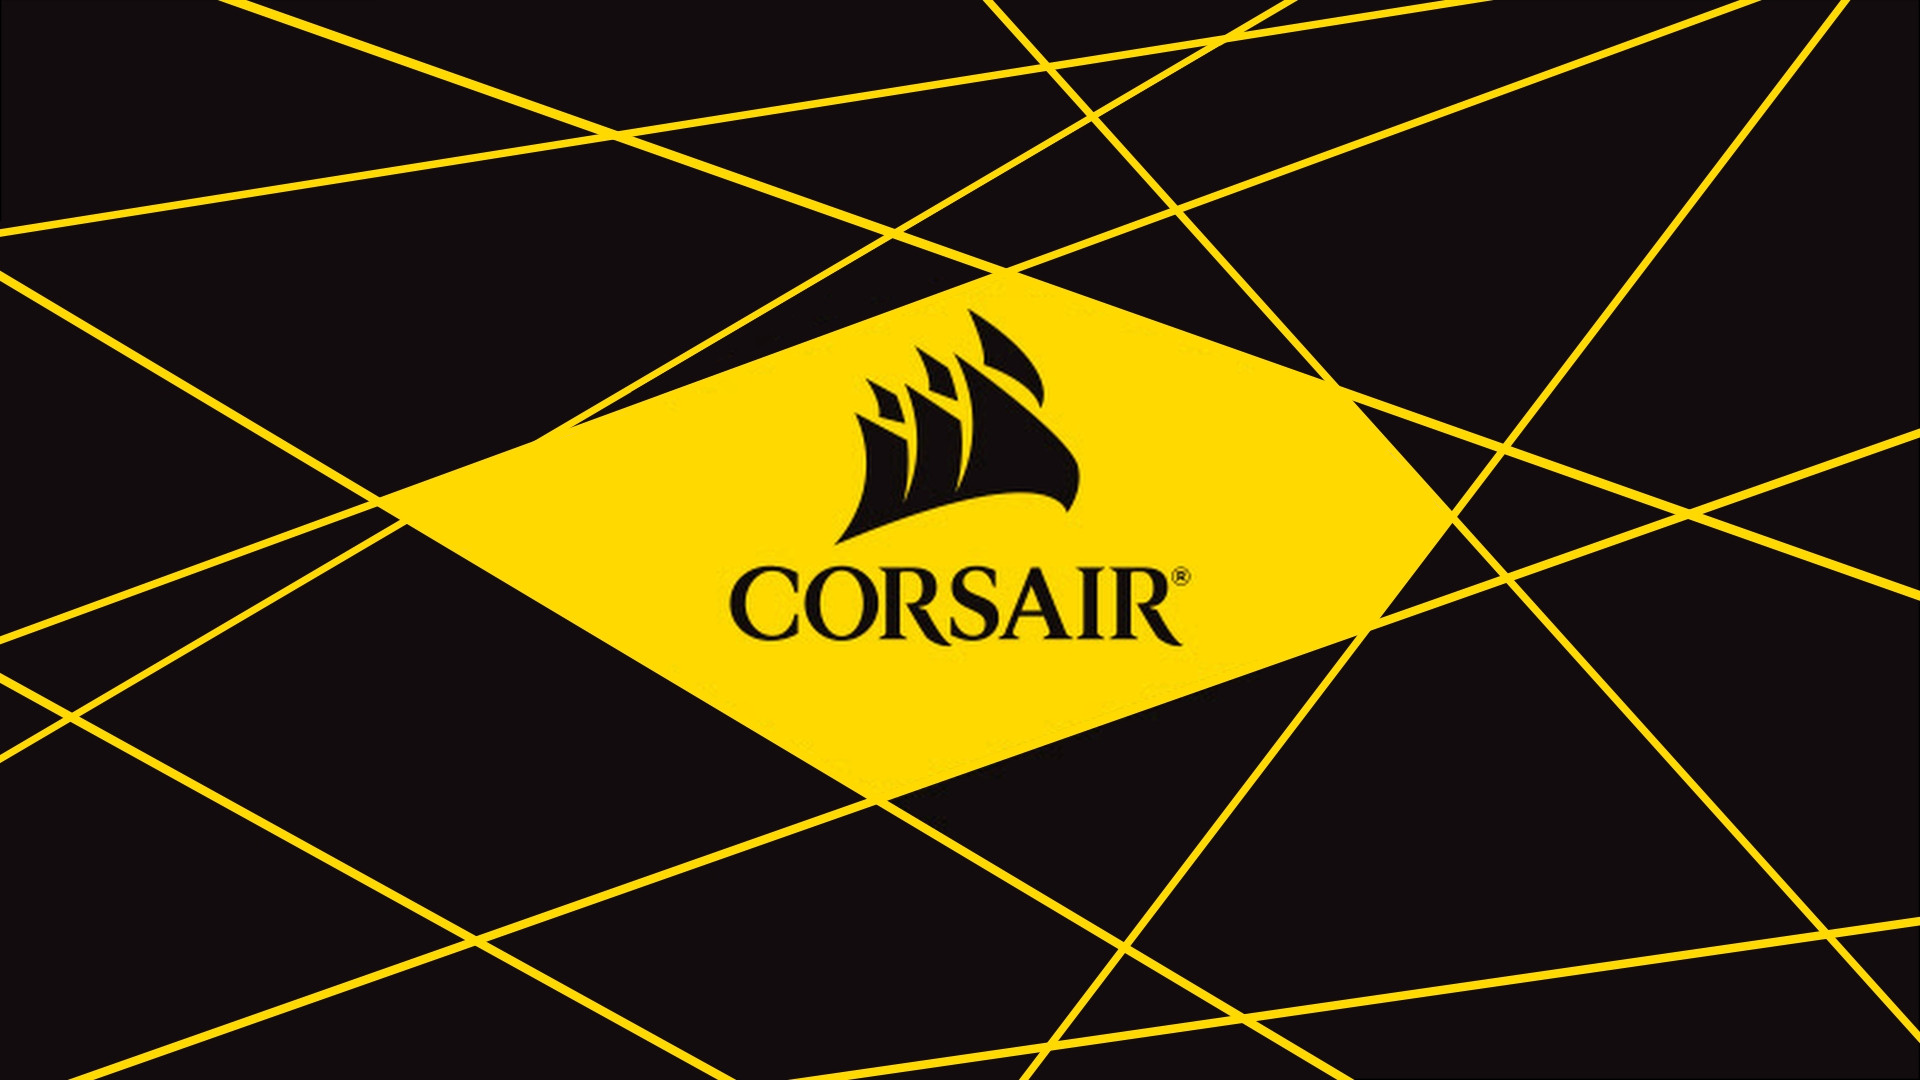 Corsair Gaming Wallpaper 80 Images